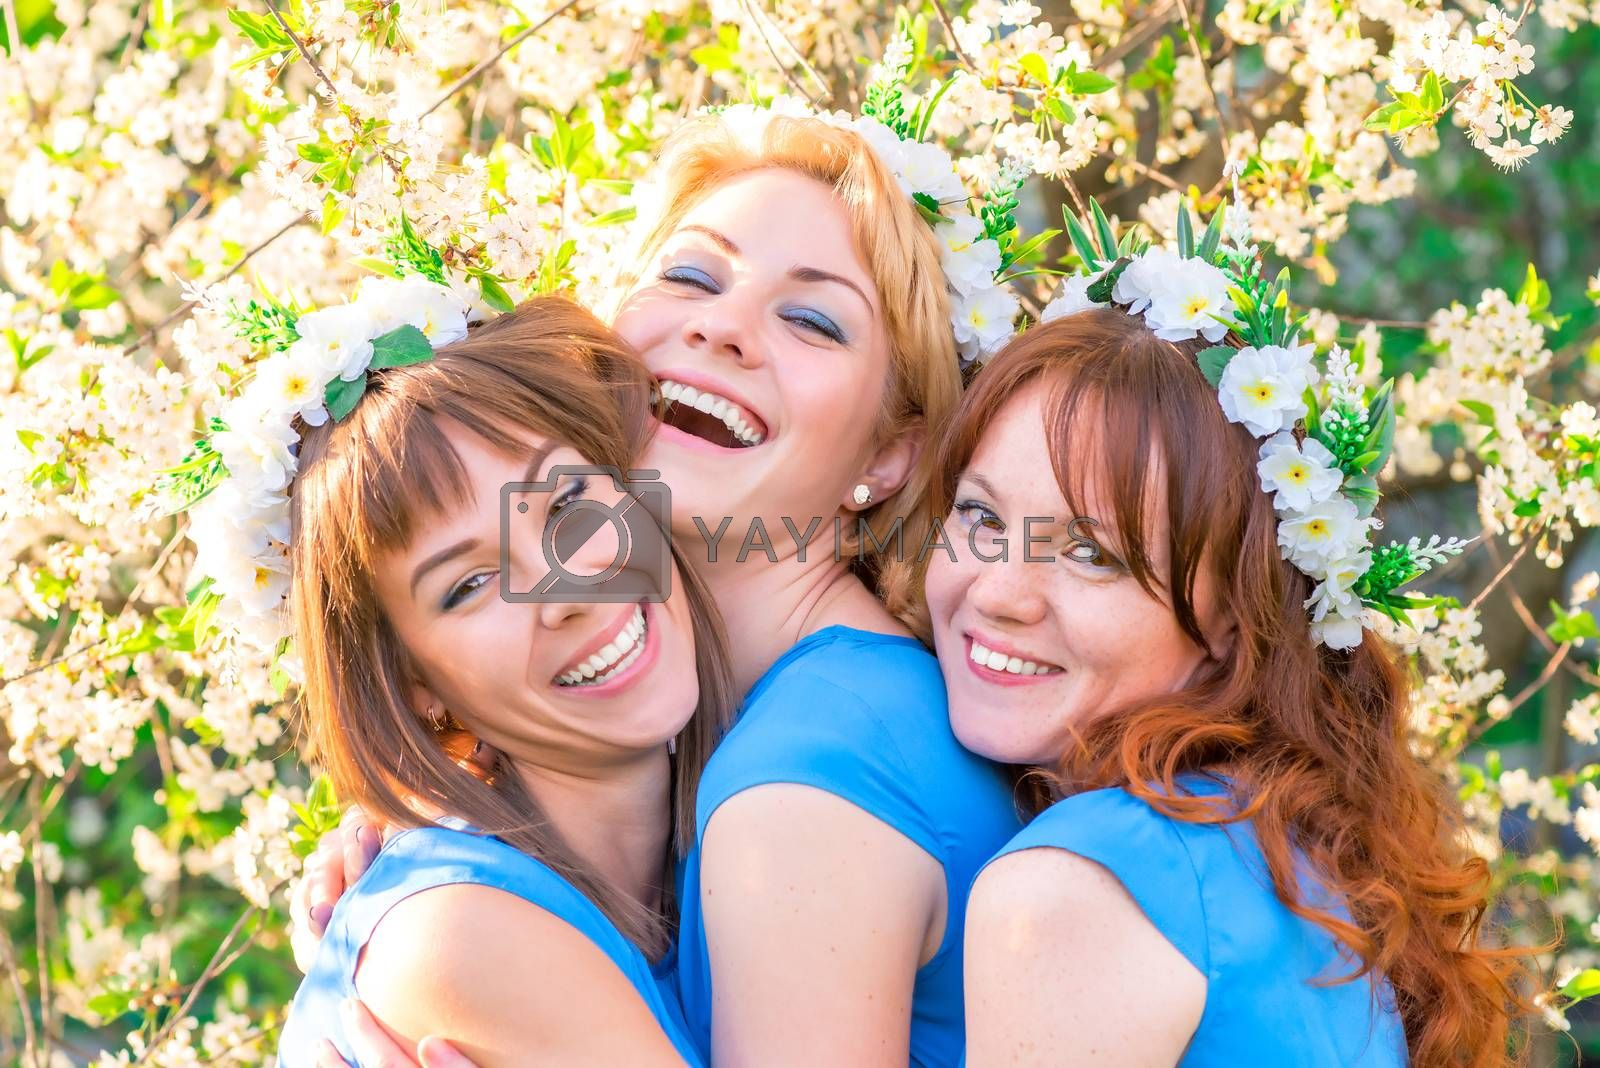 Three laughing girls in blue dresses in the lush spring garden